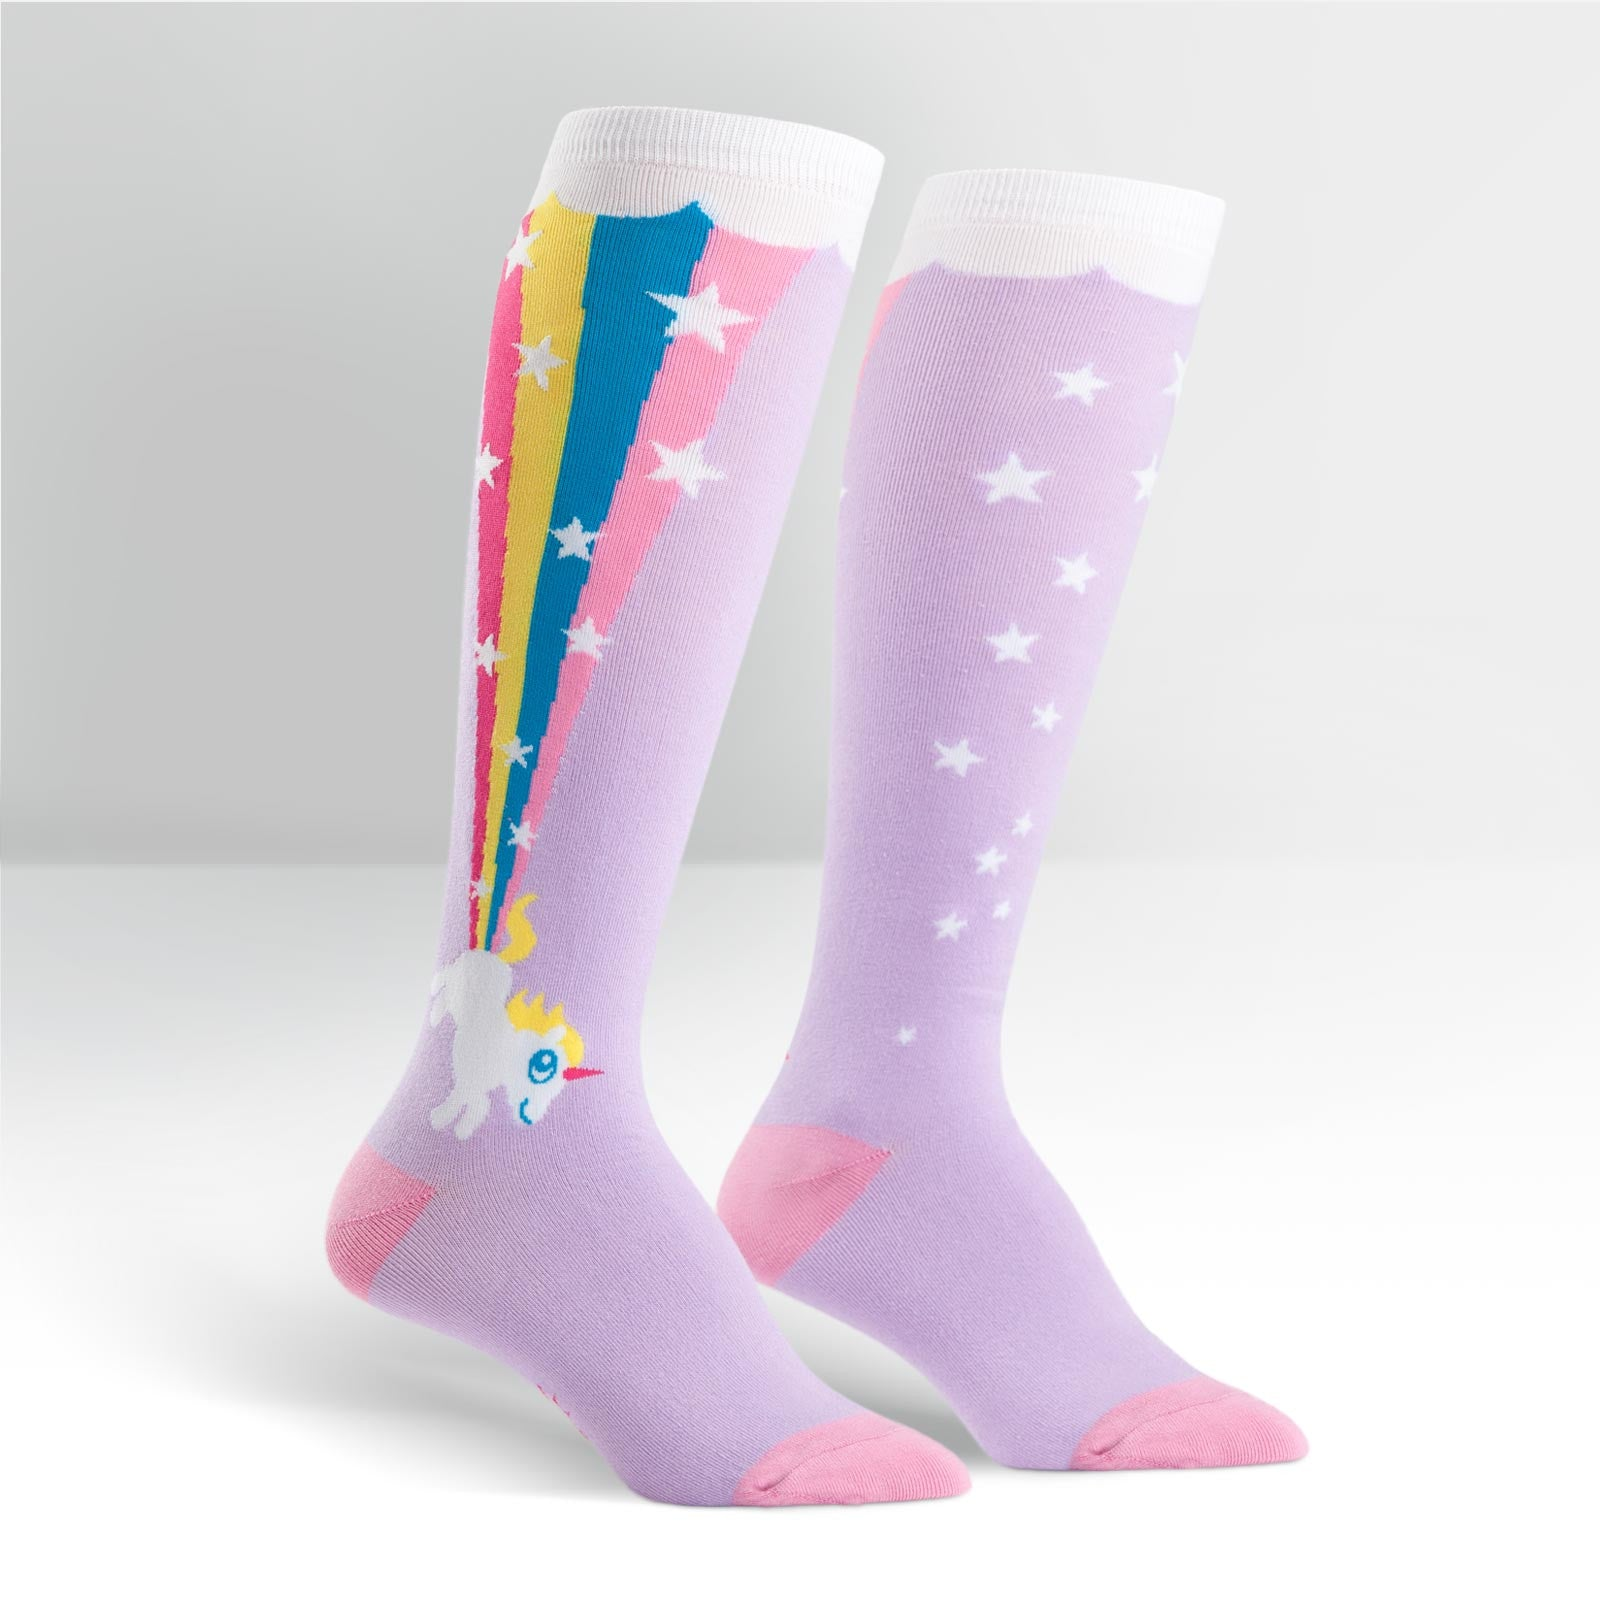 Women's High Knee Socks - Rainbow Blast